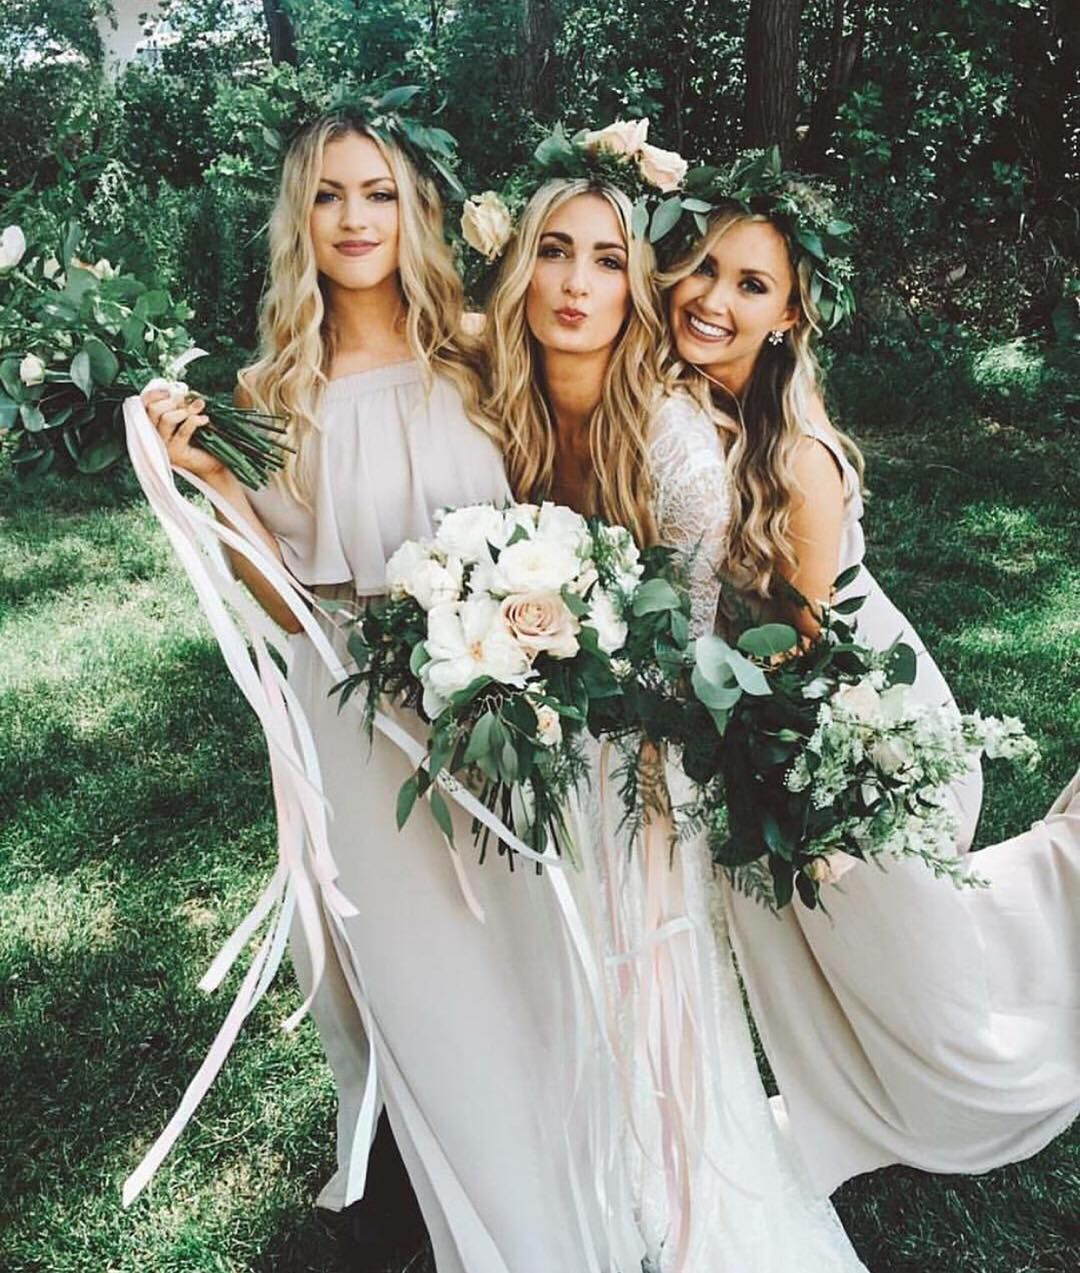 deab27aa899 A bride and her besties in Show Me The Ring Bridesmaid Dresses